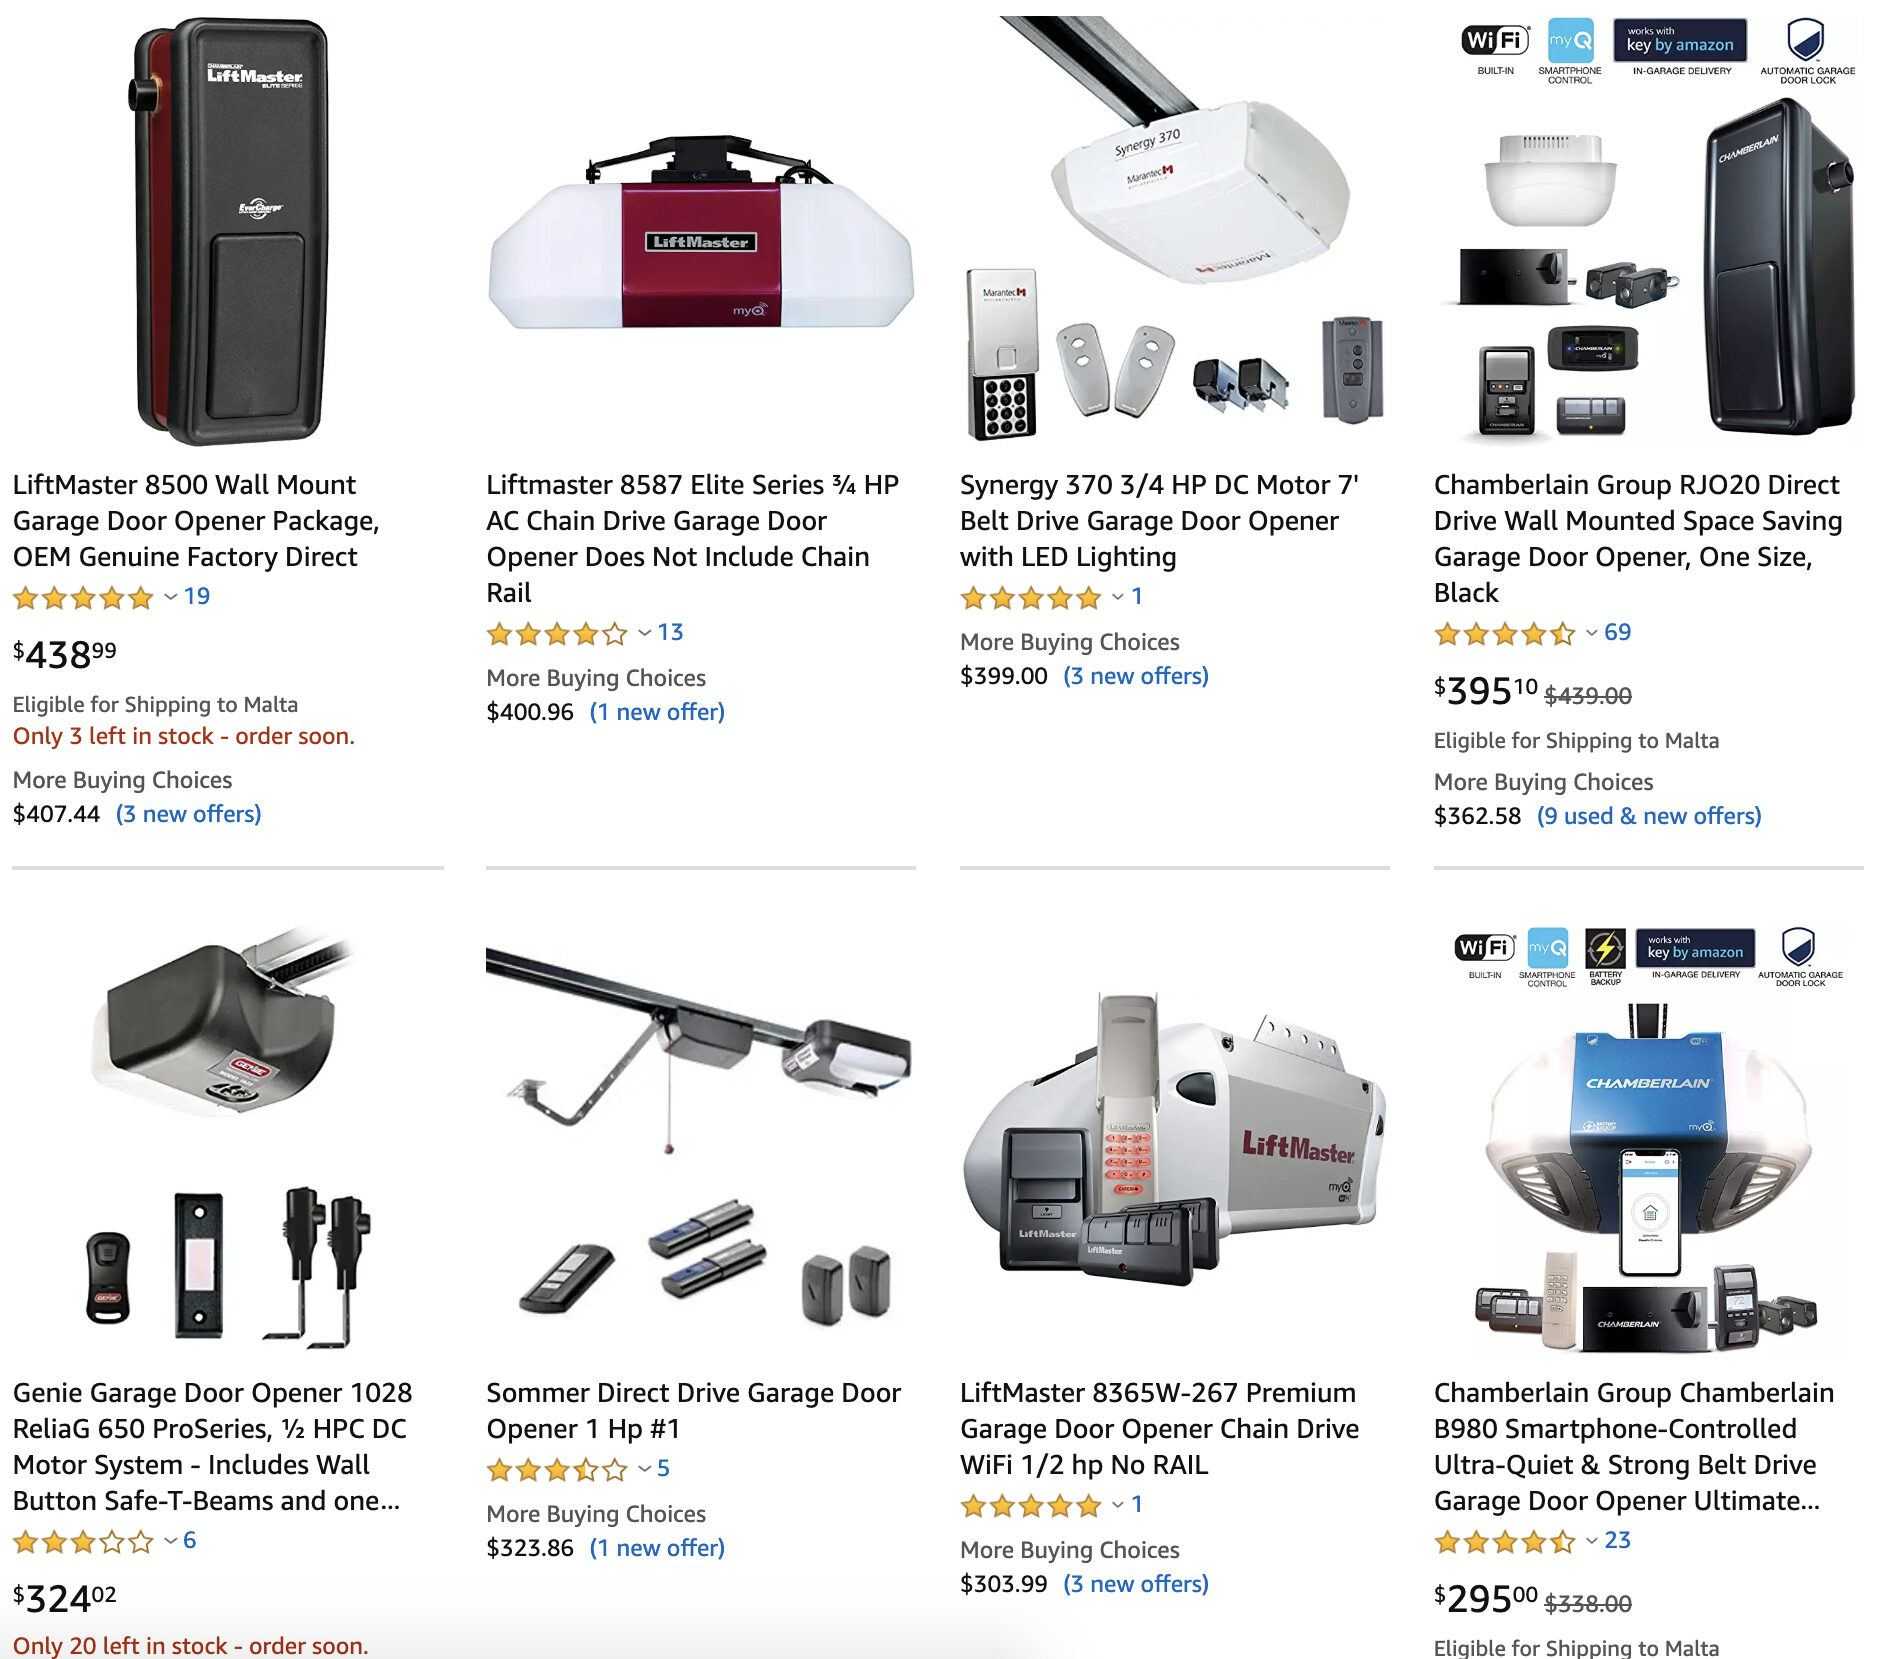 finding products to promote on Amazon